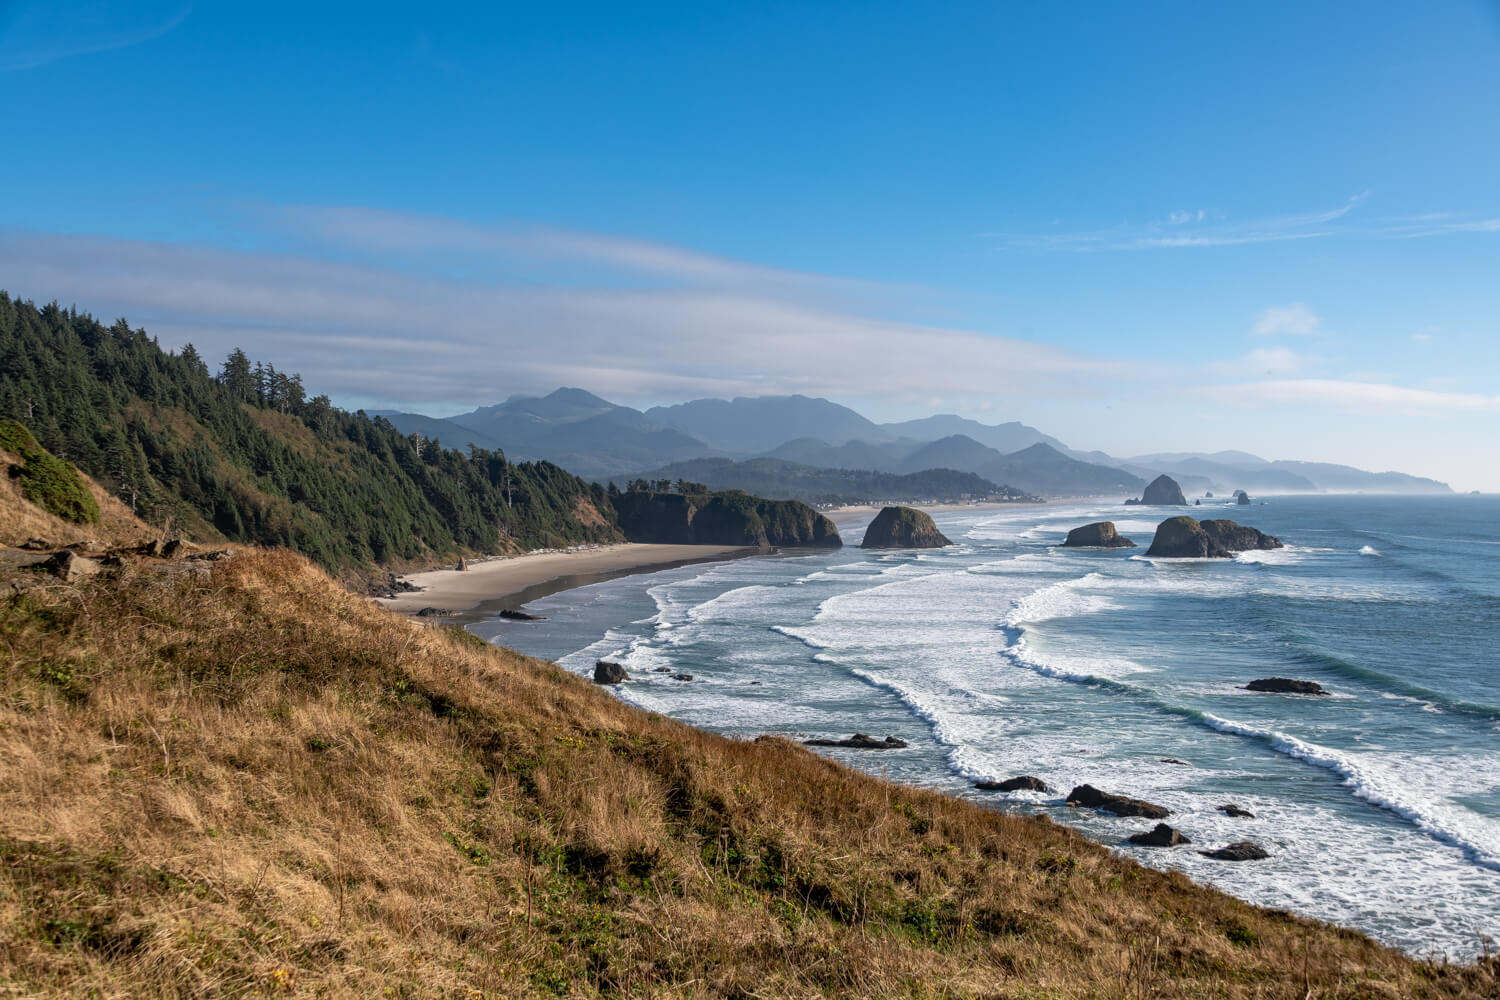 Crescent Beach view from Ecola State Park in Clatsop County, Oregon